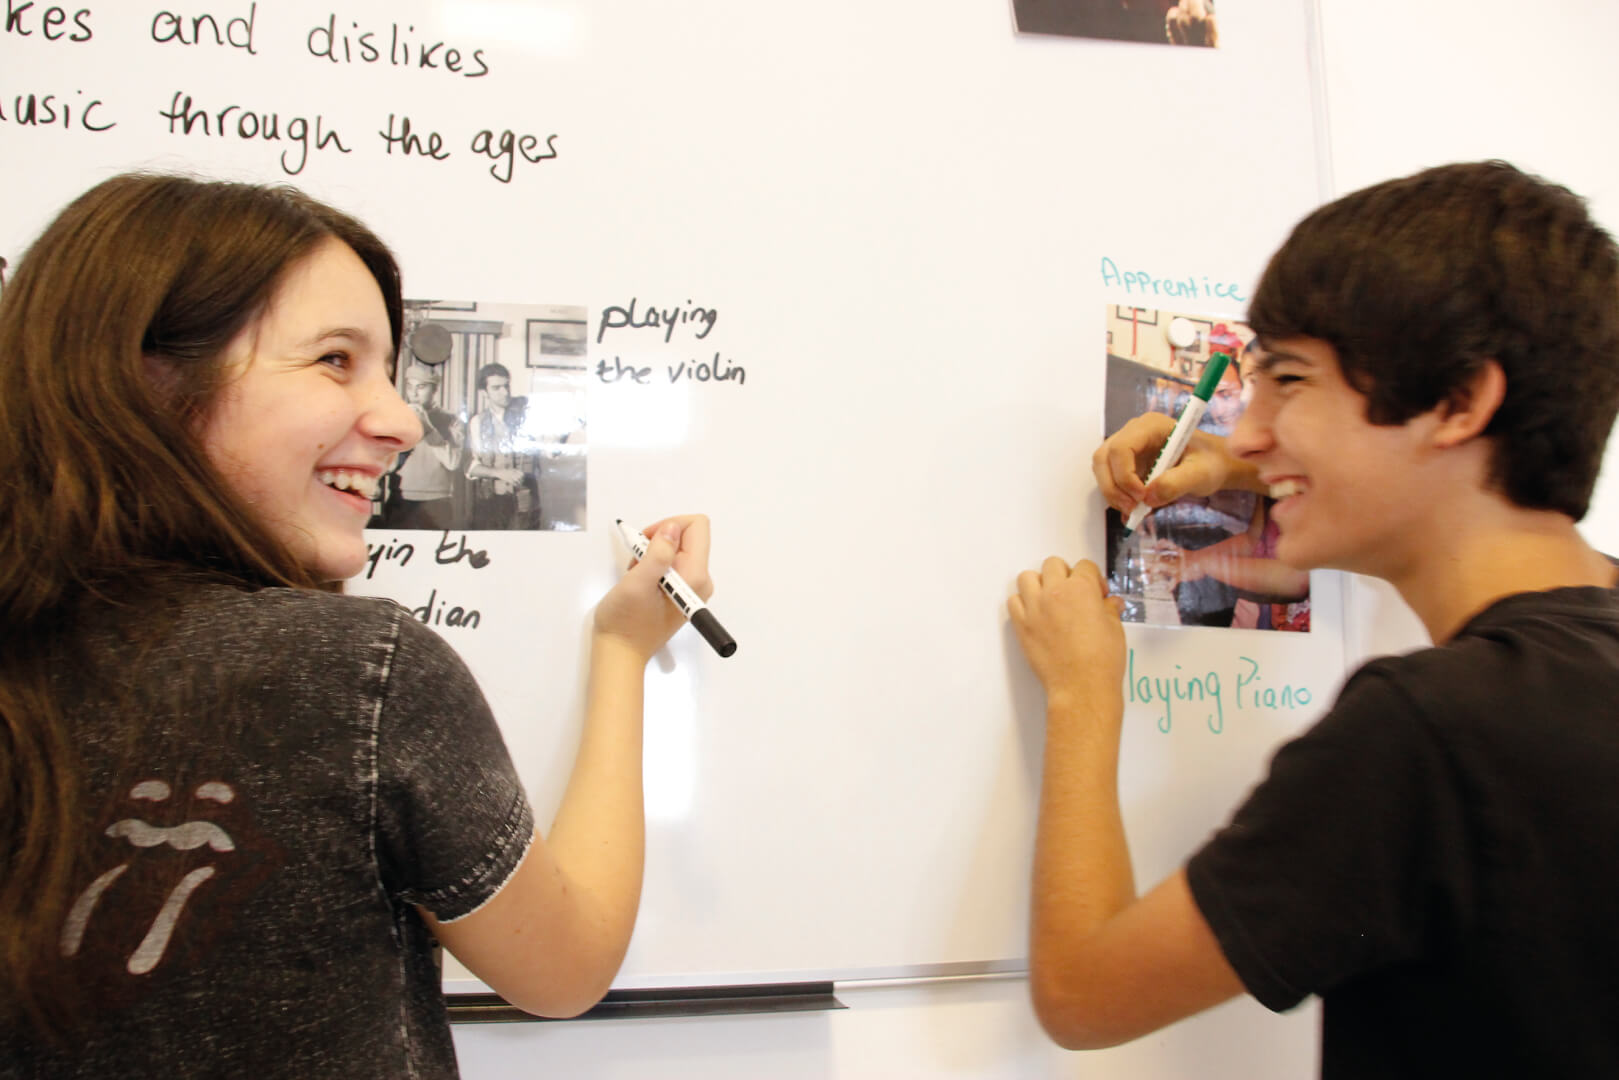 2 young English language students laughing and writing on a board.